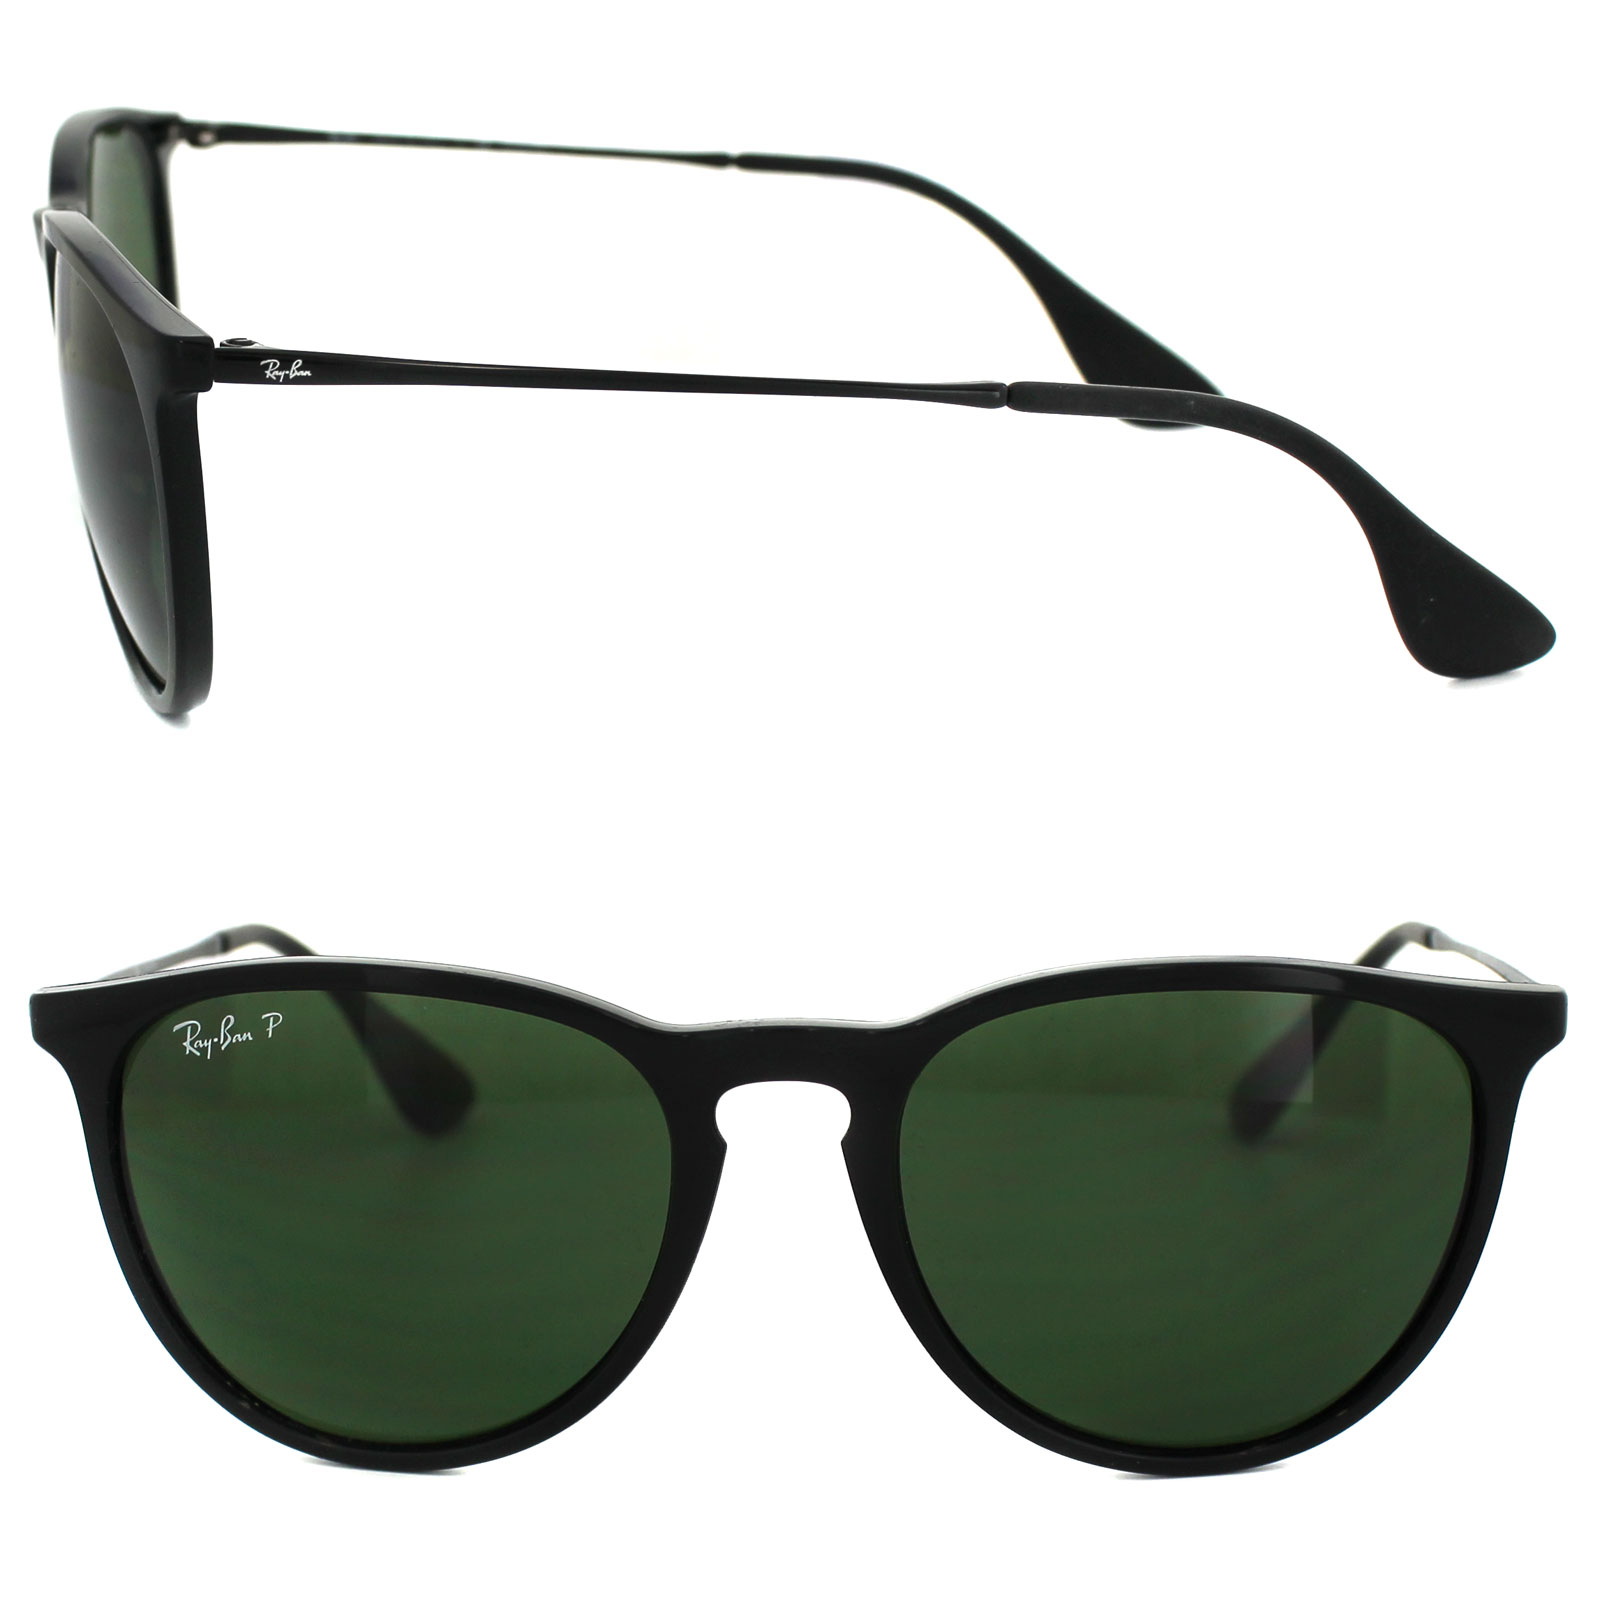 6ad4dce009 Sentinel Ray-Ban Sunglasses Erika 4171 601 2P Black Green Polarized